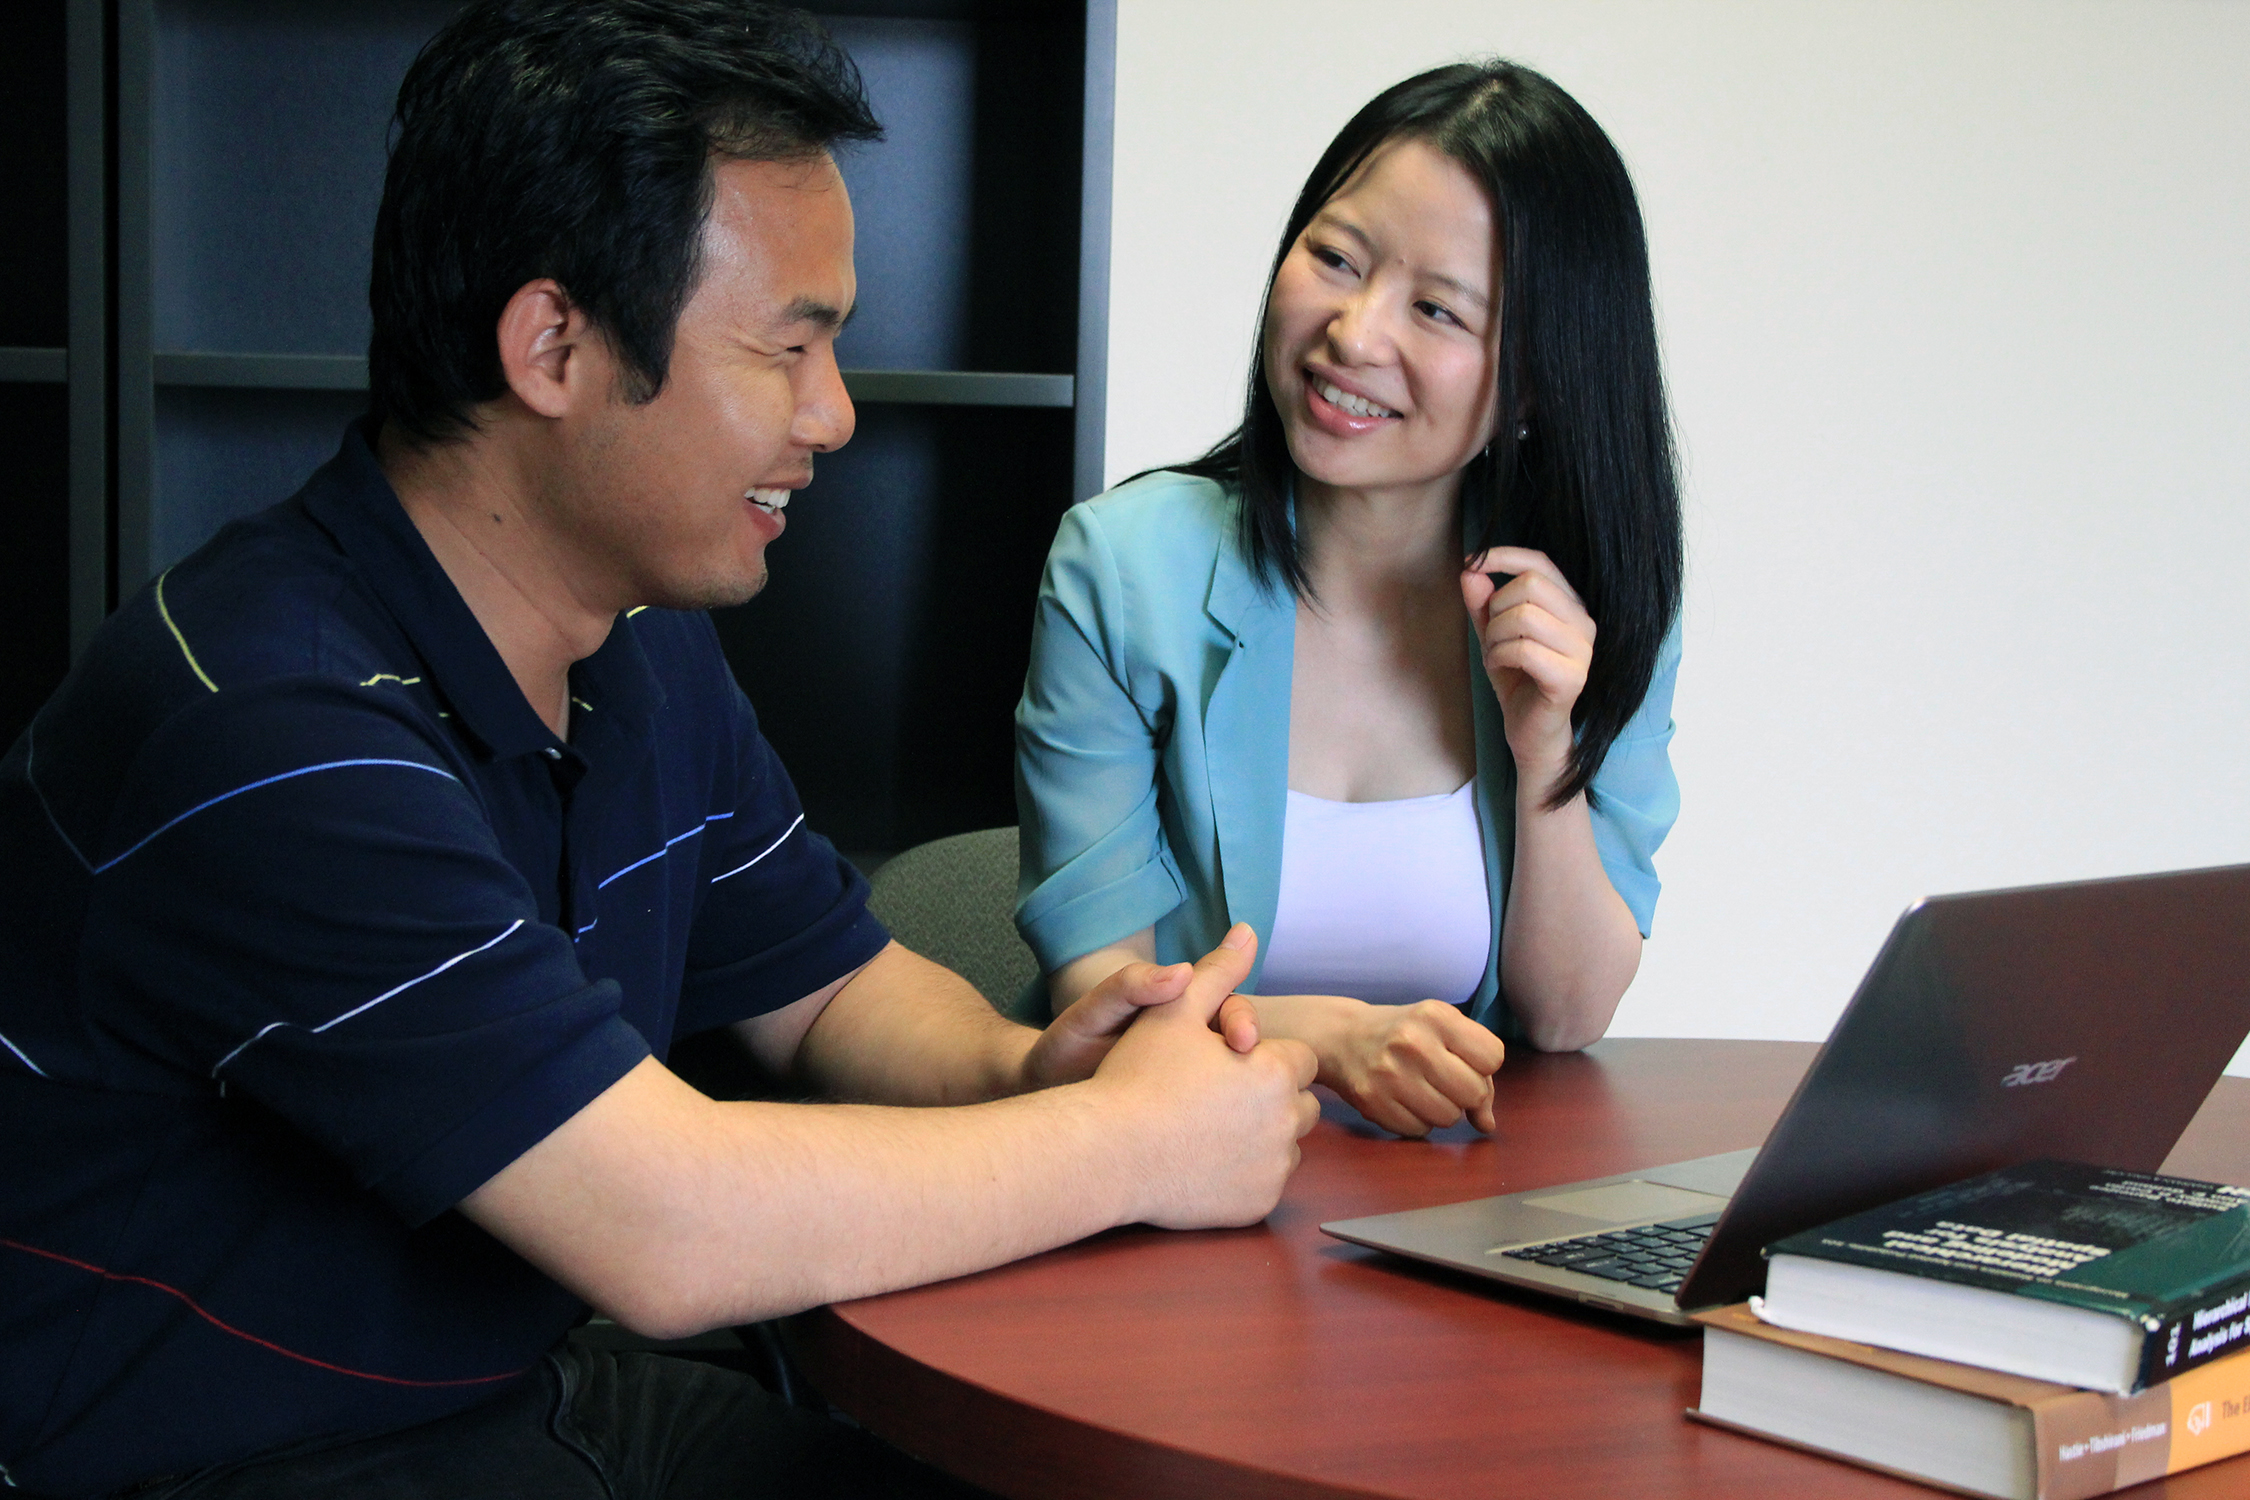 Dr. Huiyan Sang sits at a table with a graduate student and looks at a laptop